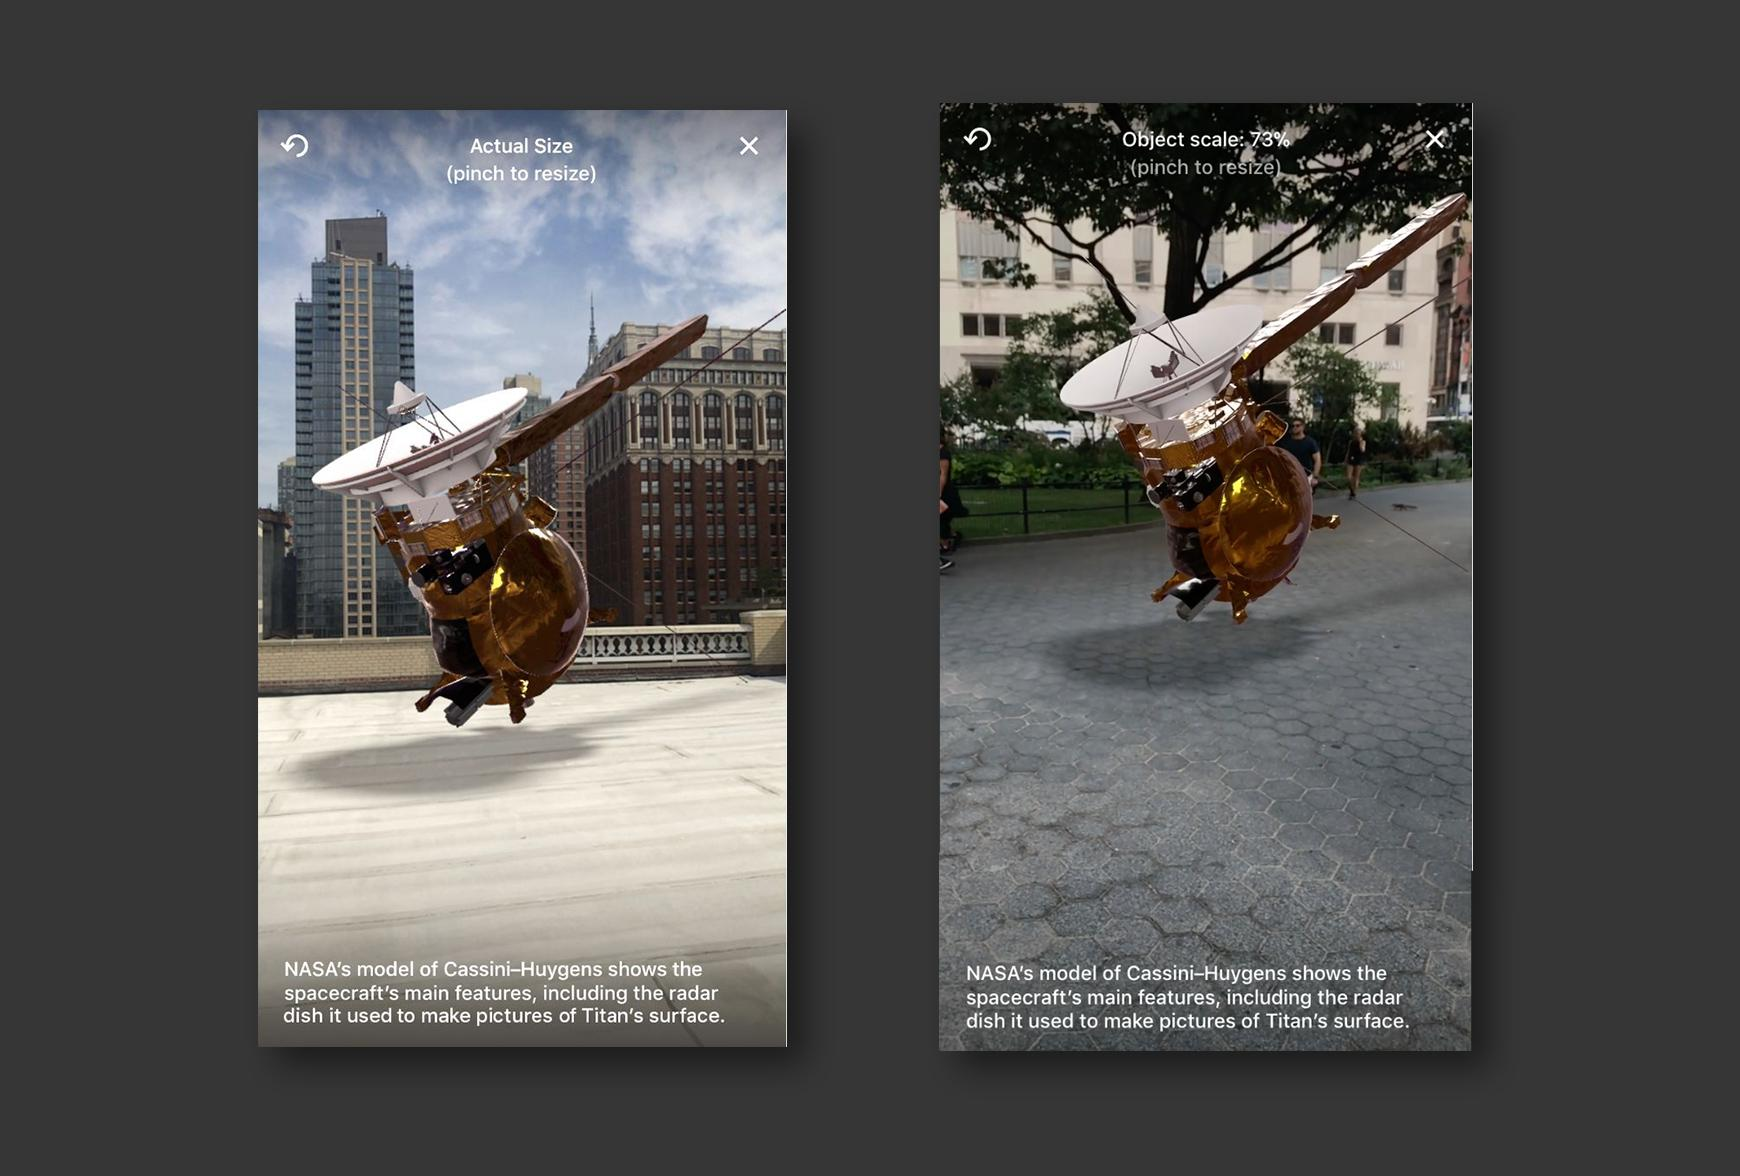 dynamic app design: AR application in news content